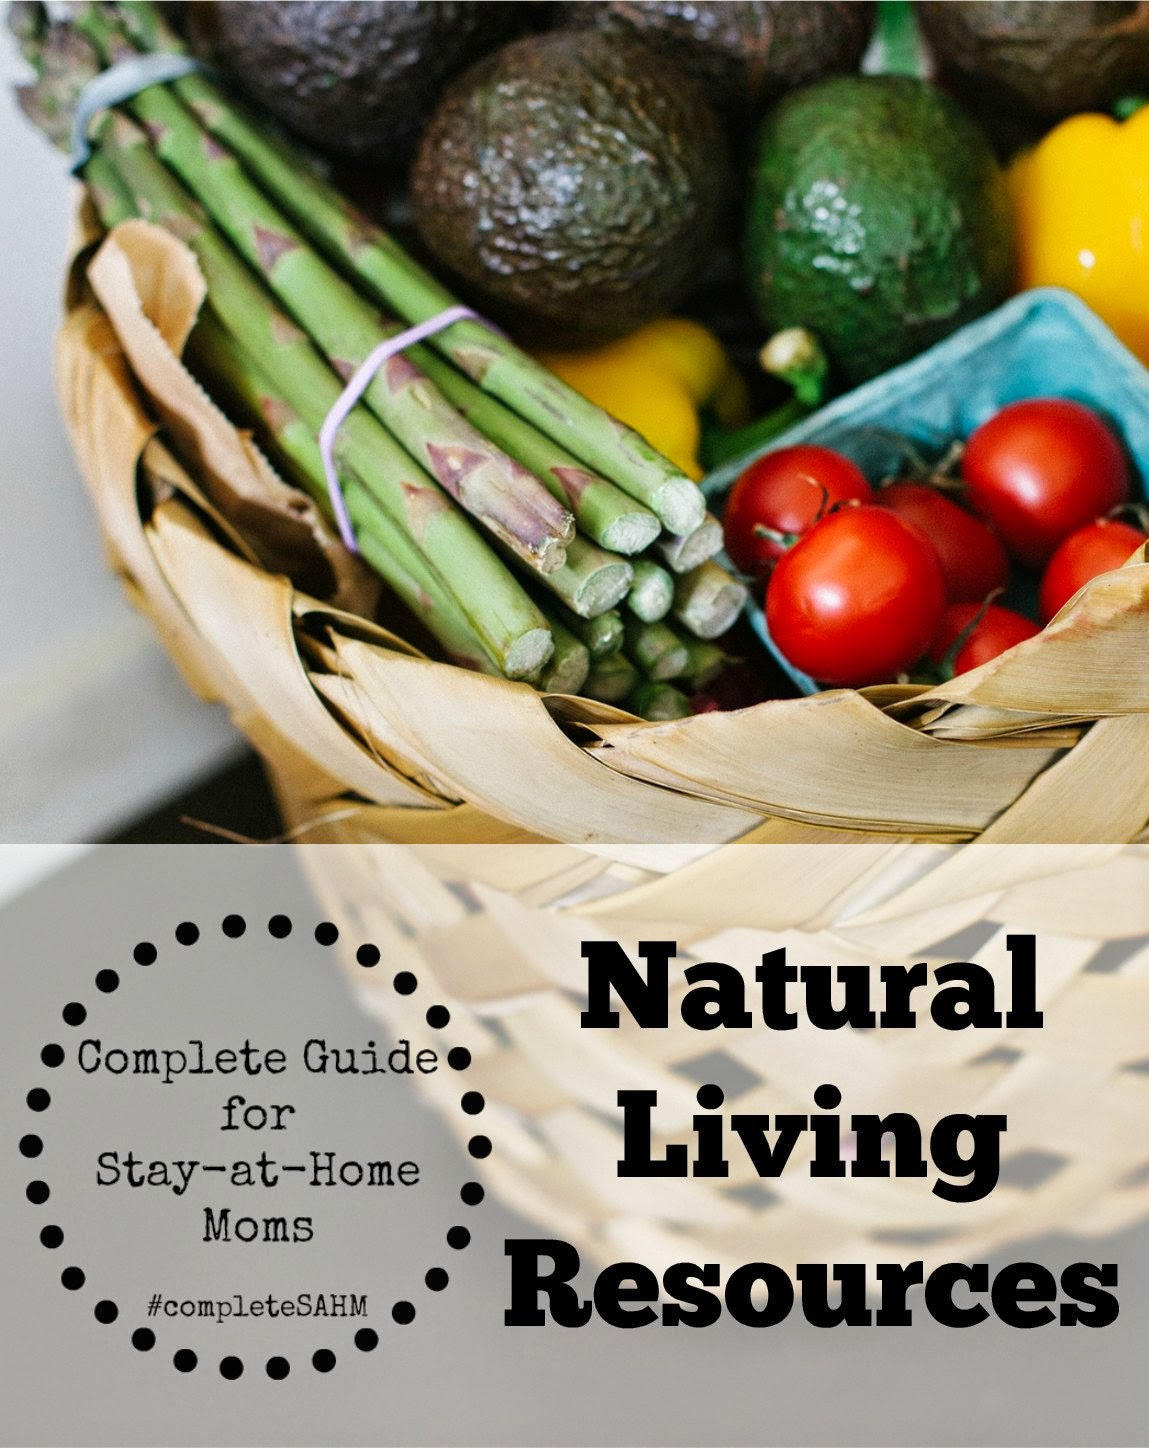 Complete Guide for Stay-at-Home Moms: Natural Living Resources and Remedies